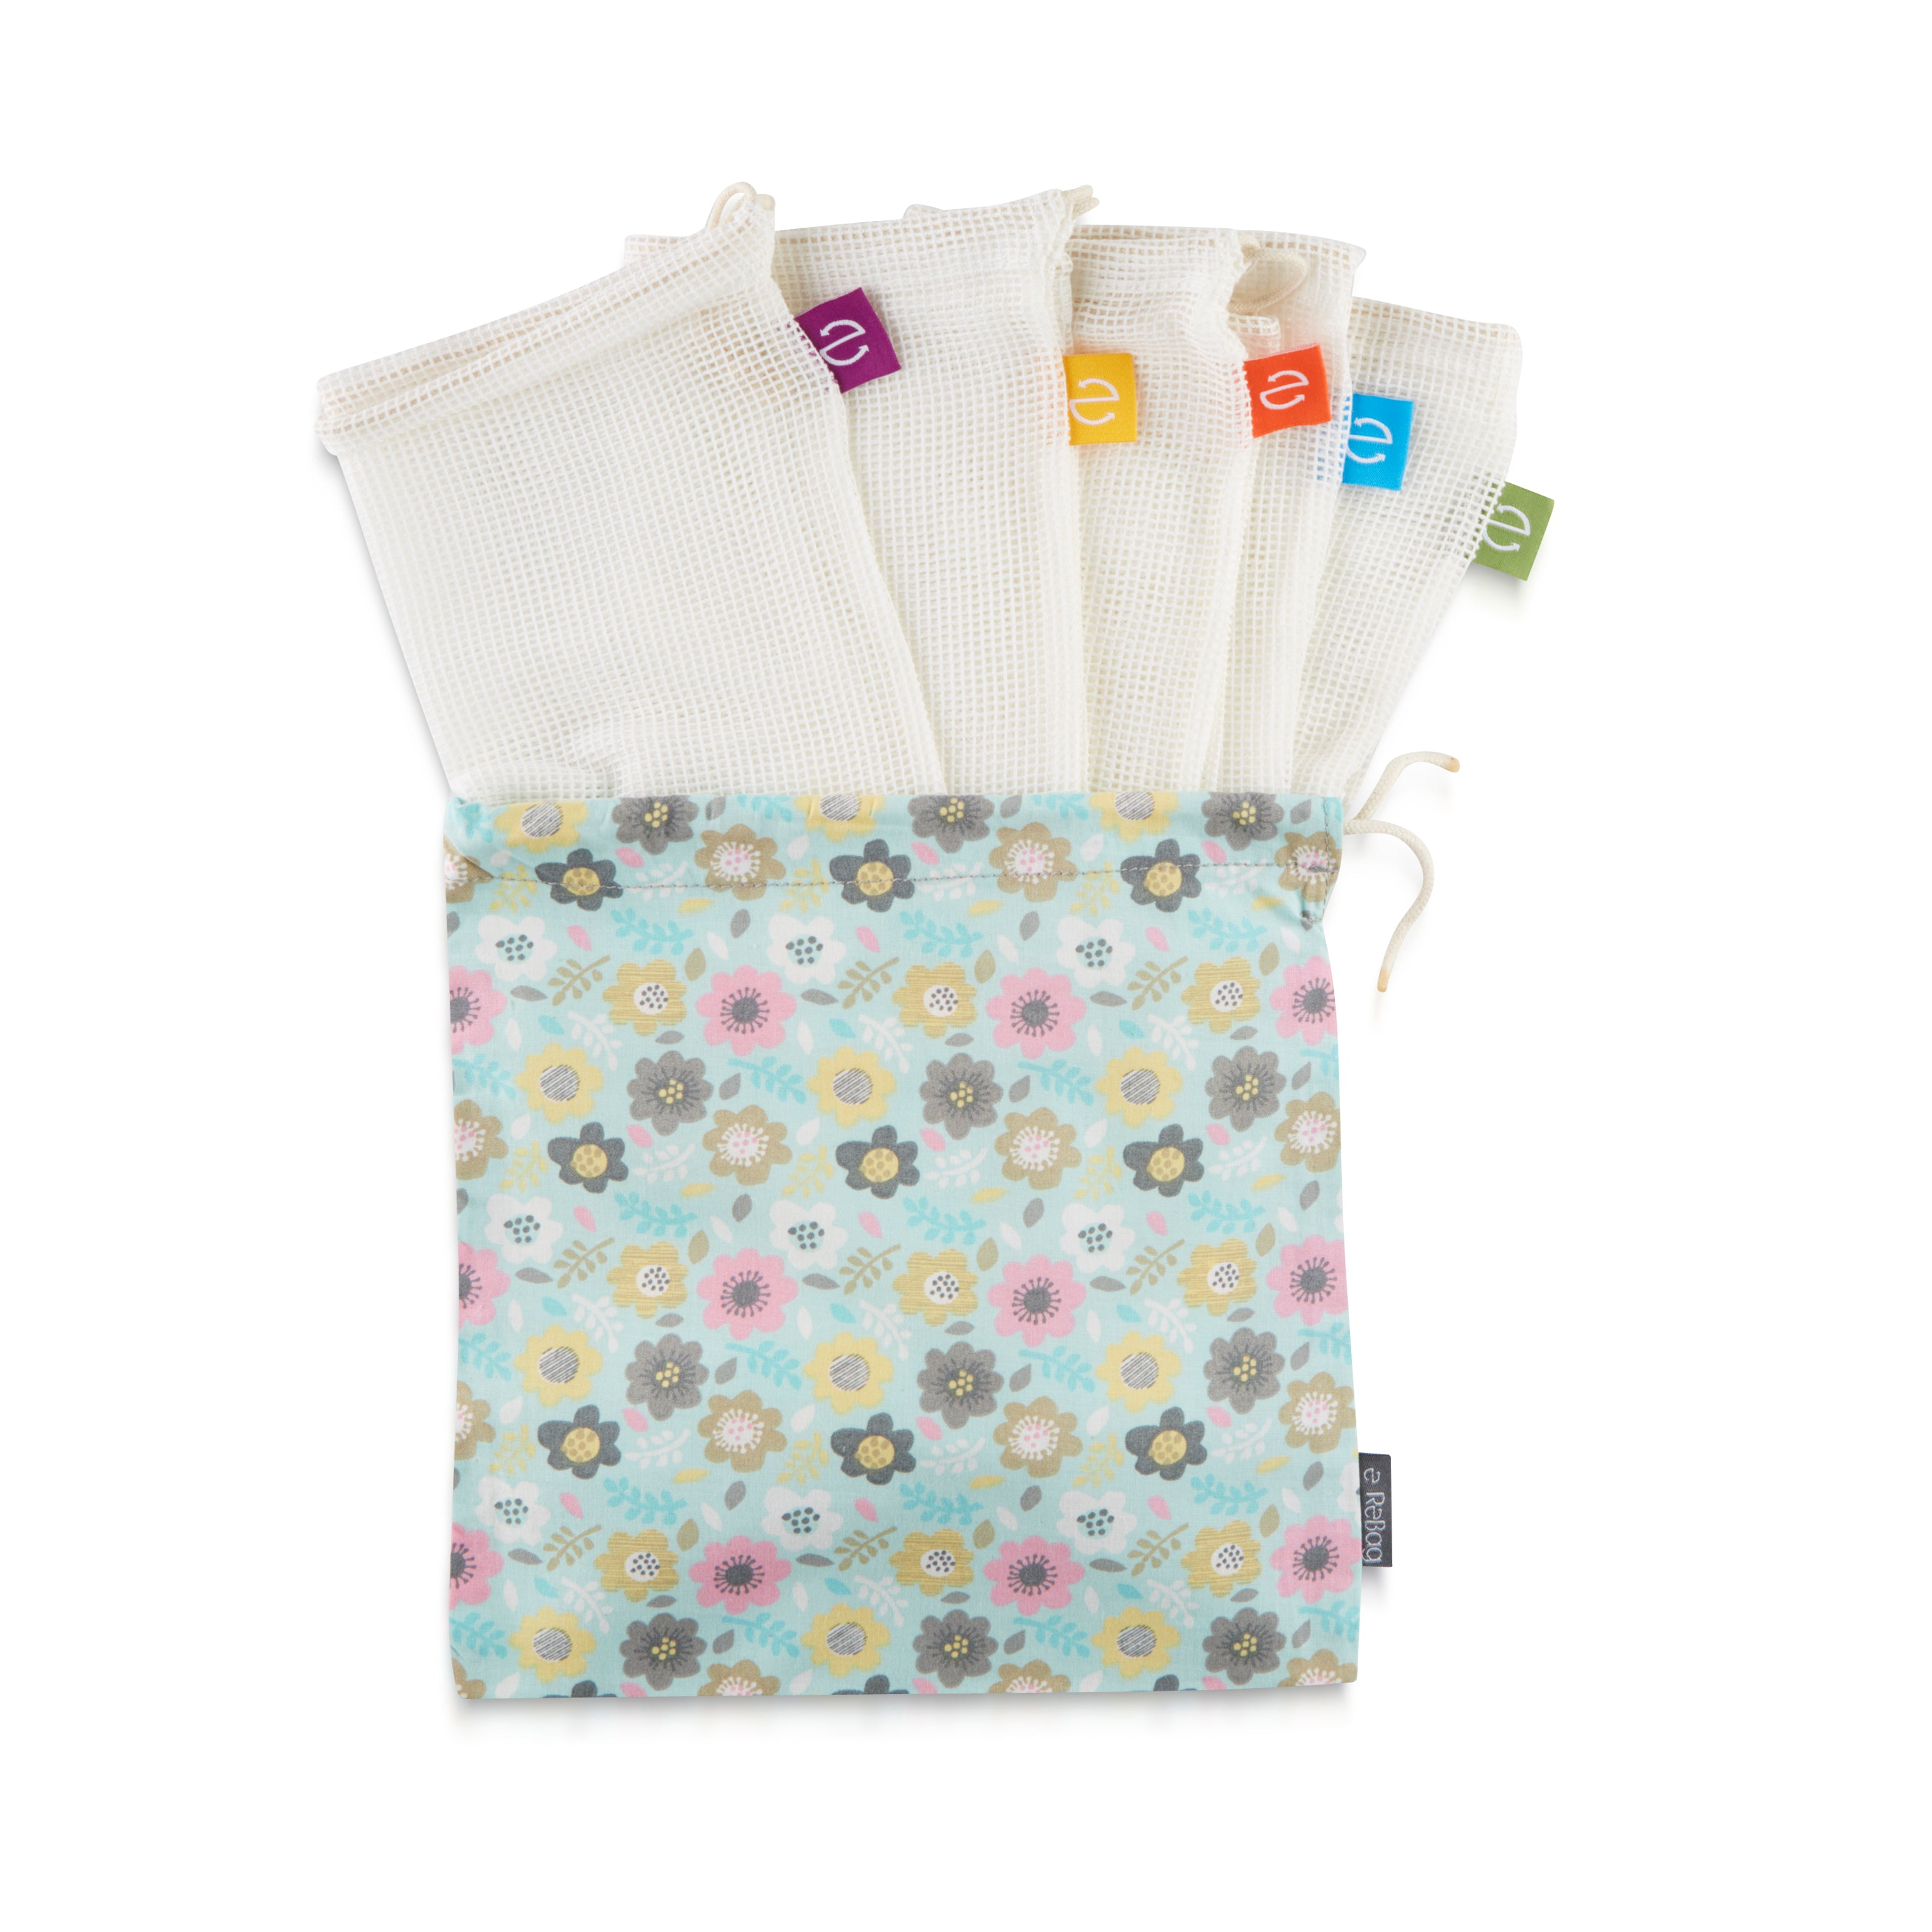 5x Produce Bags + Blue Floral Carry Bag